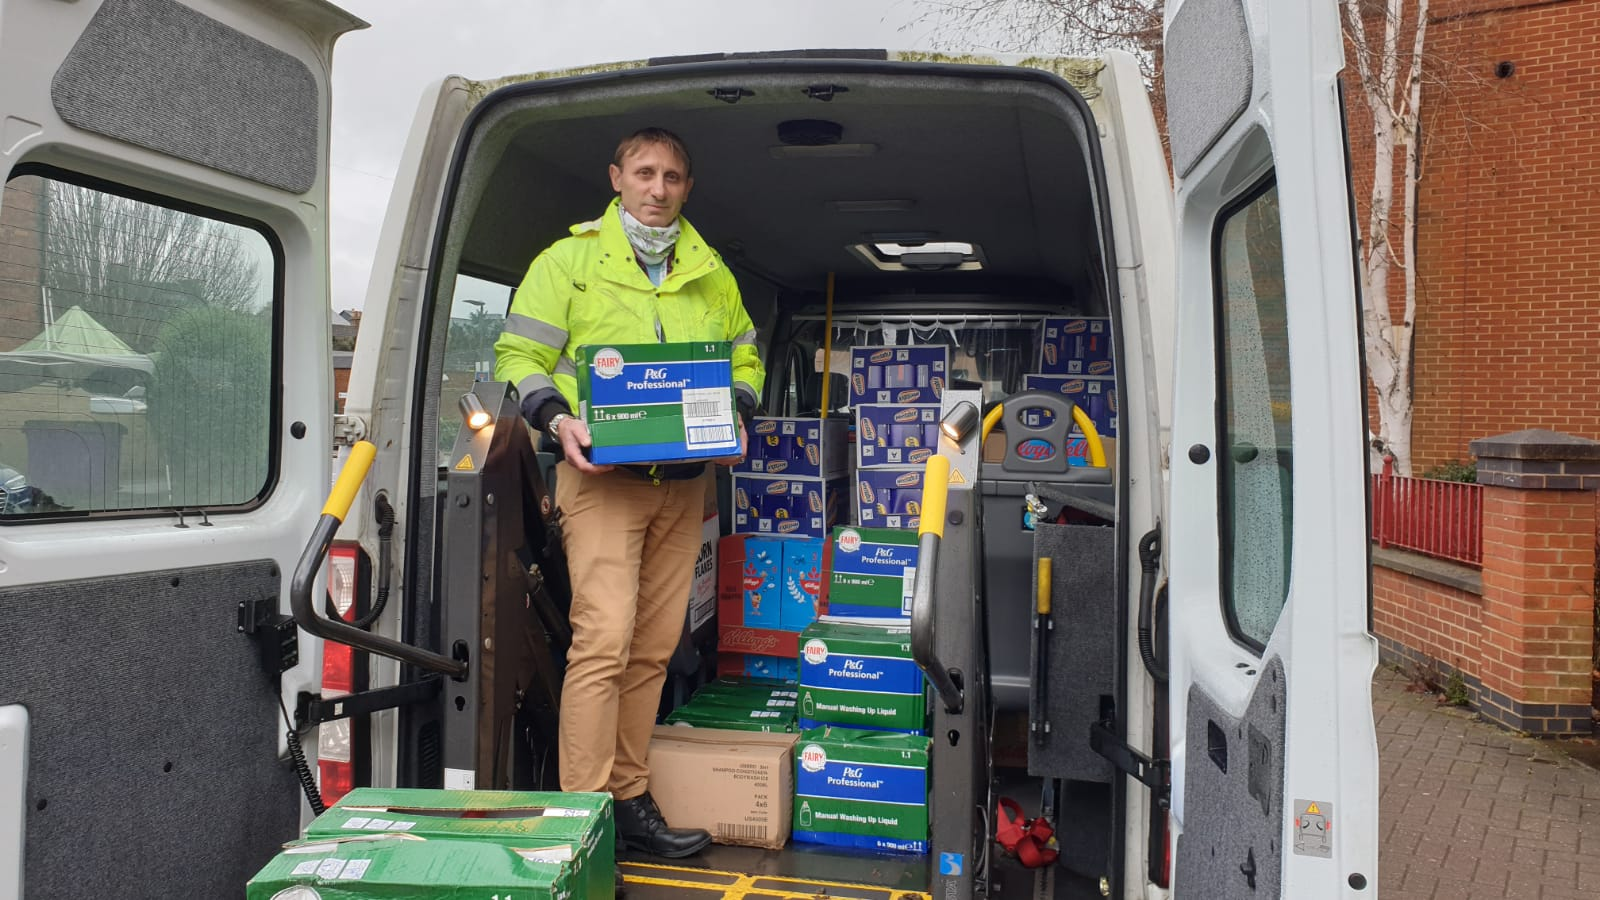 Community transport bus and driver delivering supplies